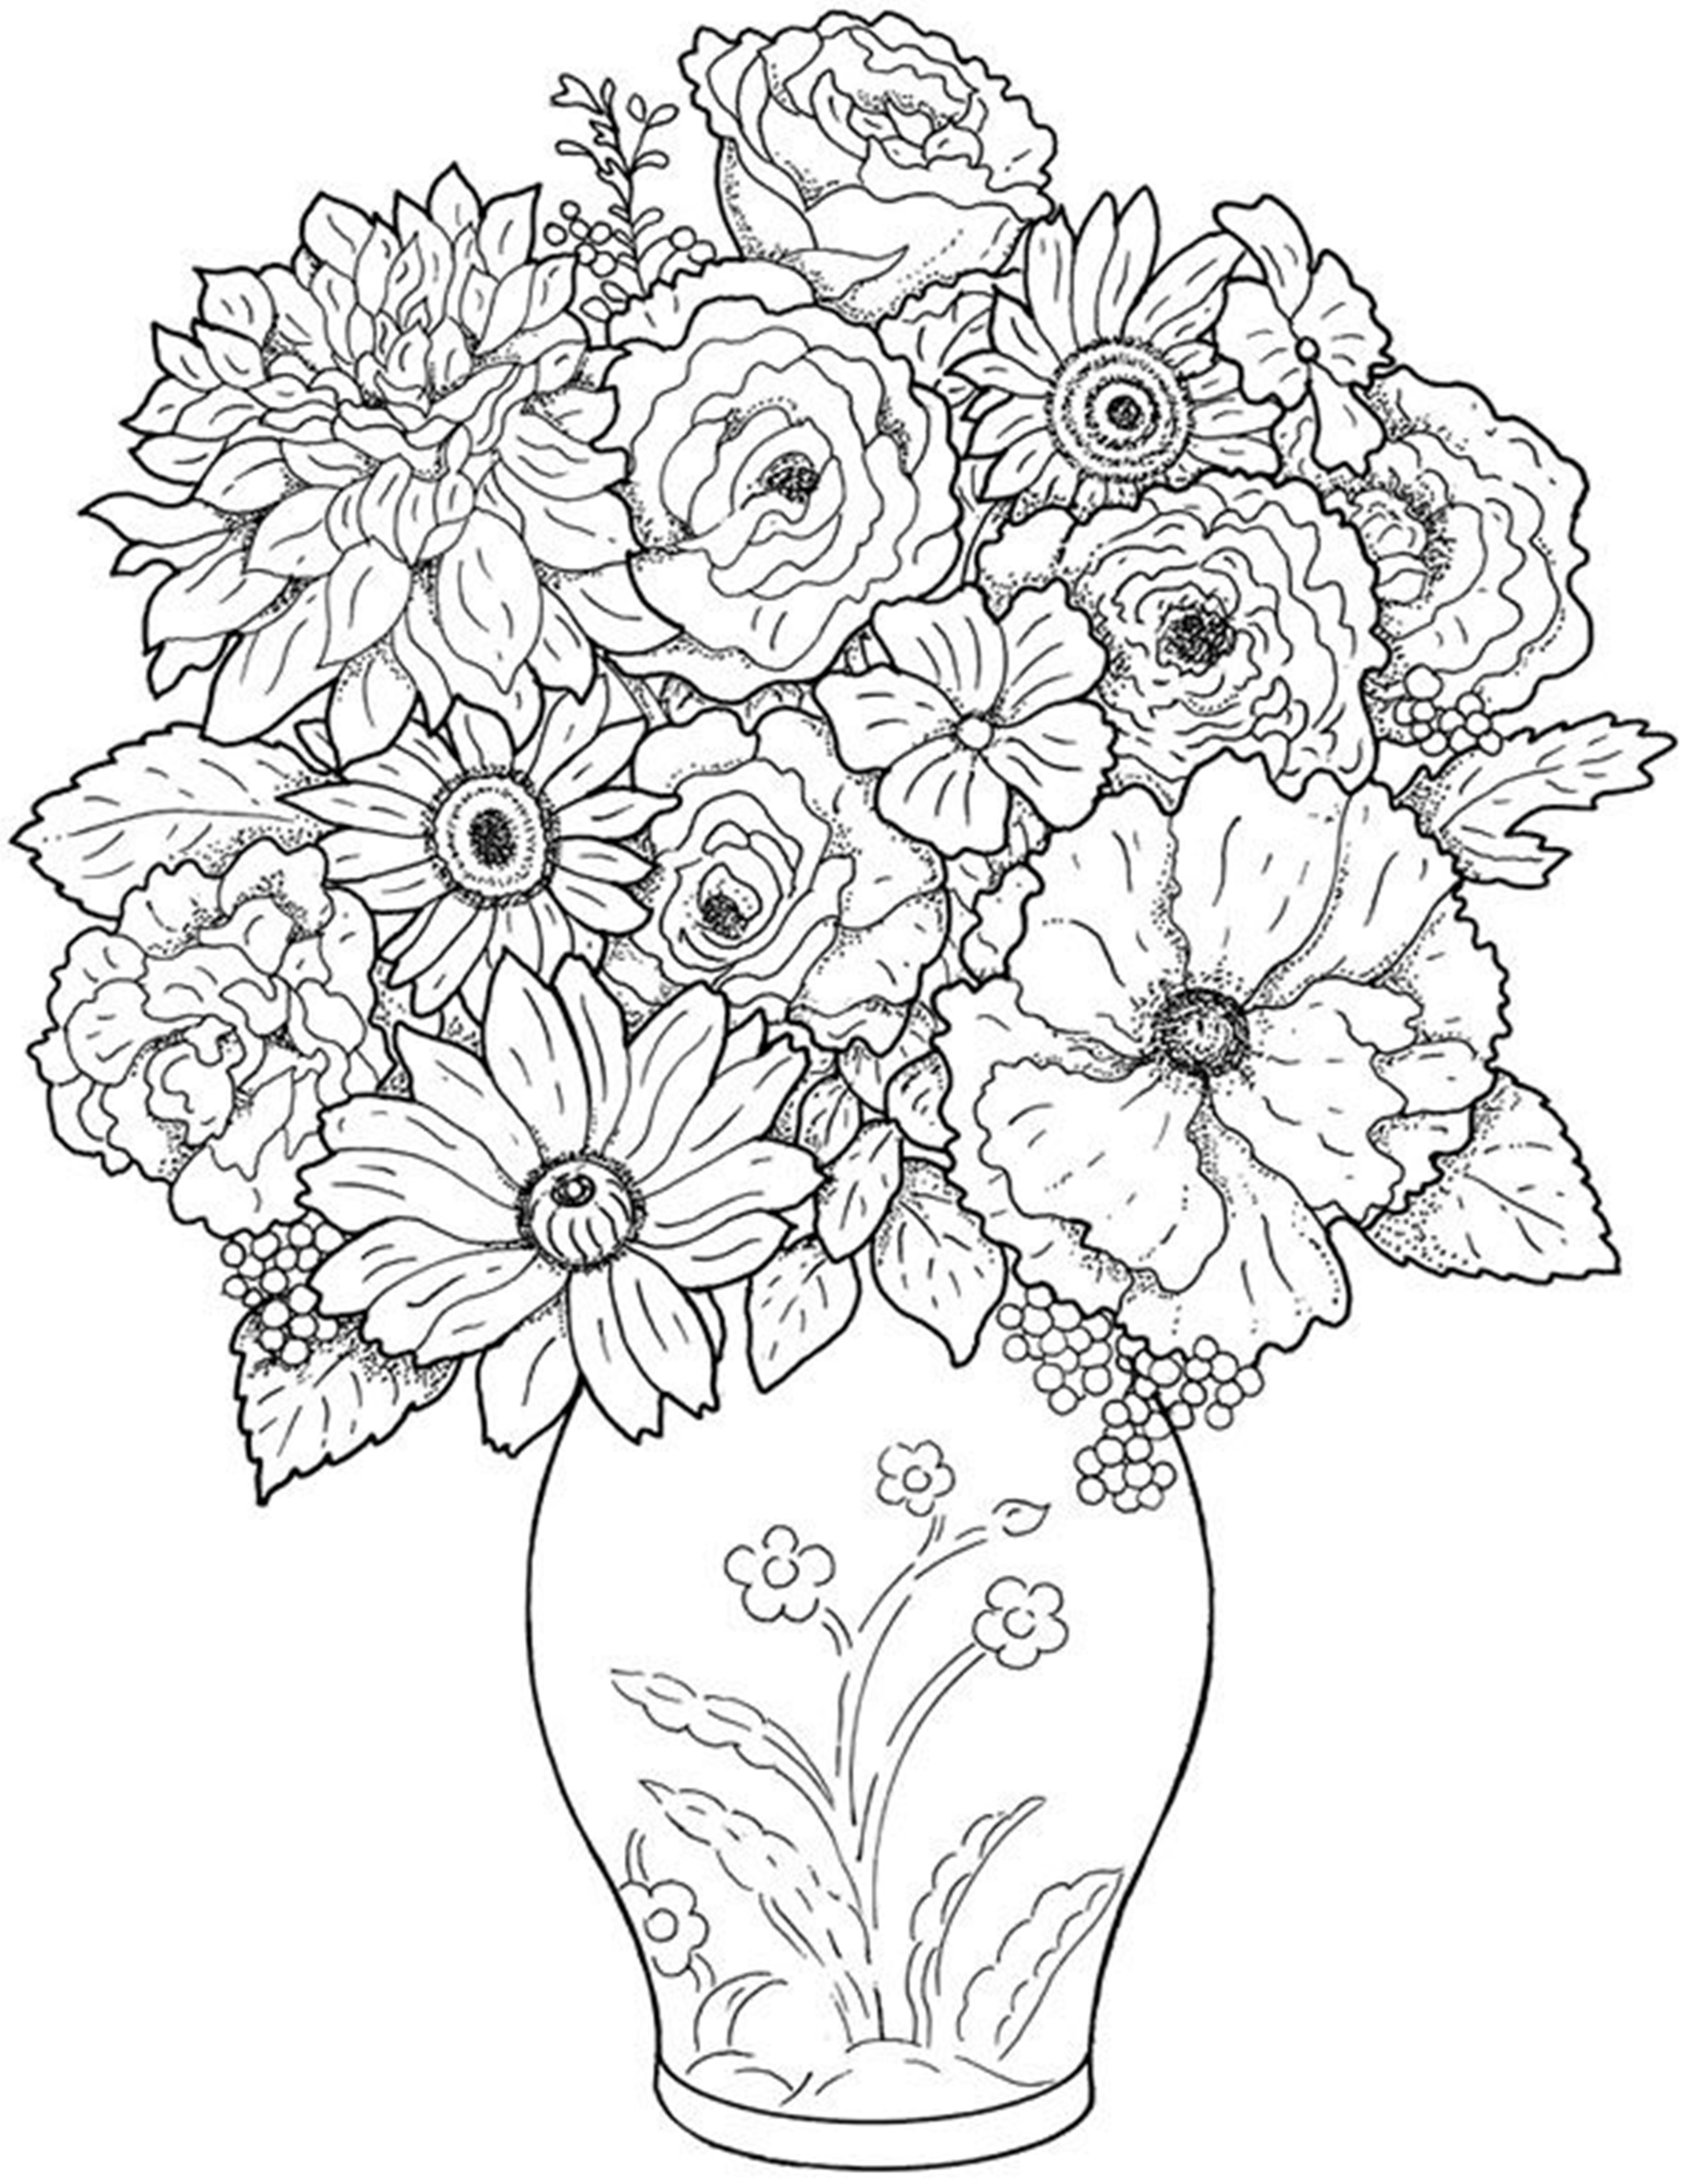 coloring pages about flowers flower coloring pages coloring about pages flowers